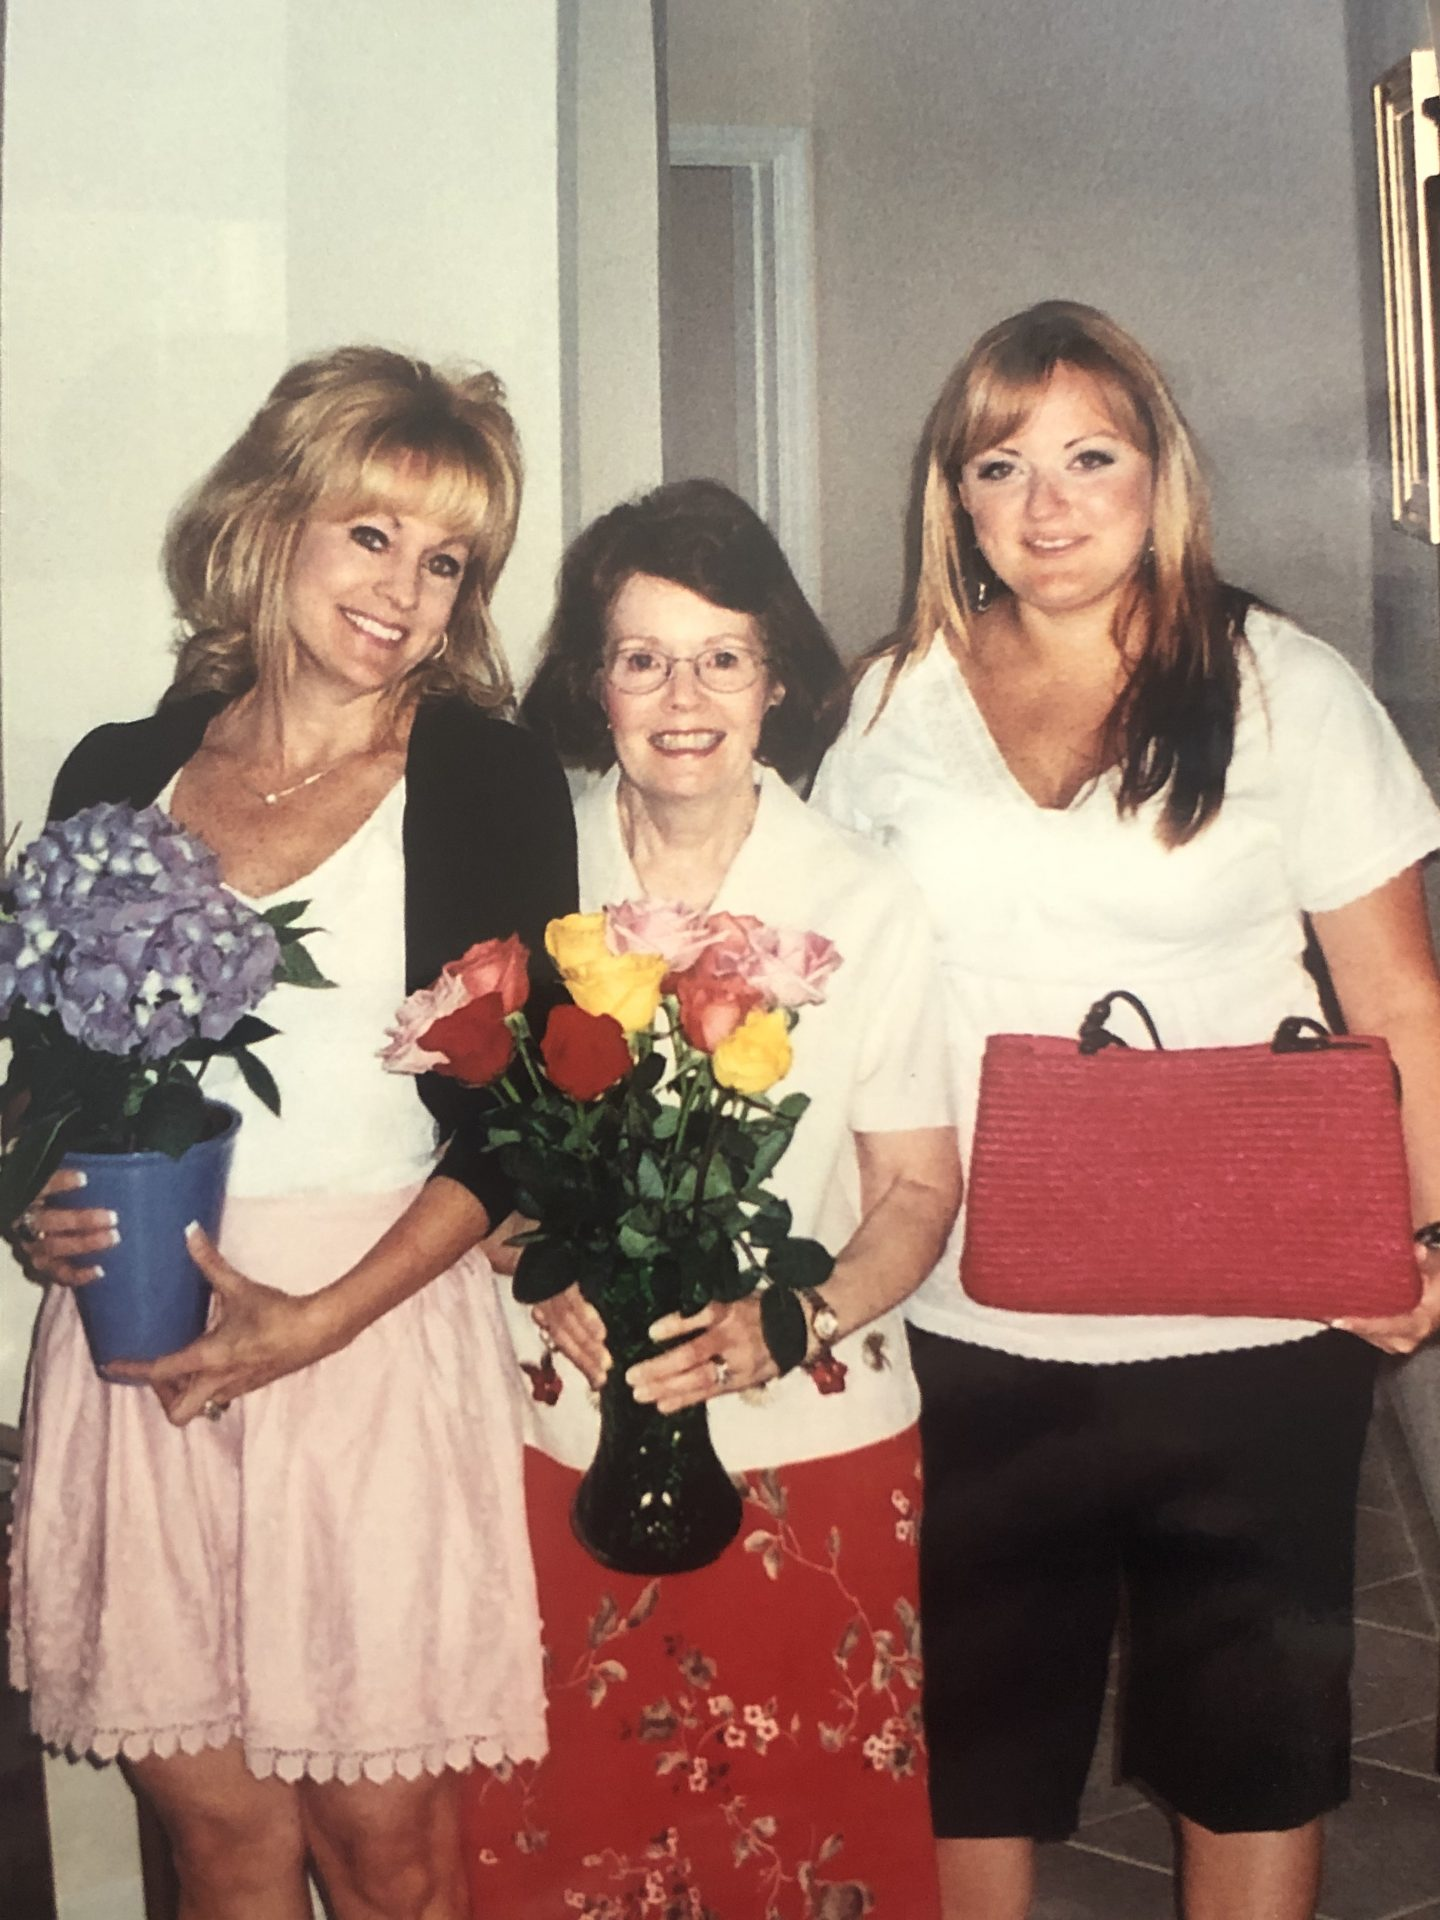 Polly, Lisa and Ashley- mother, daughter and granddaughter